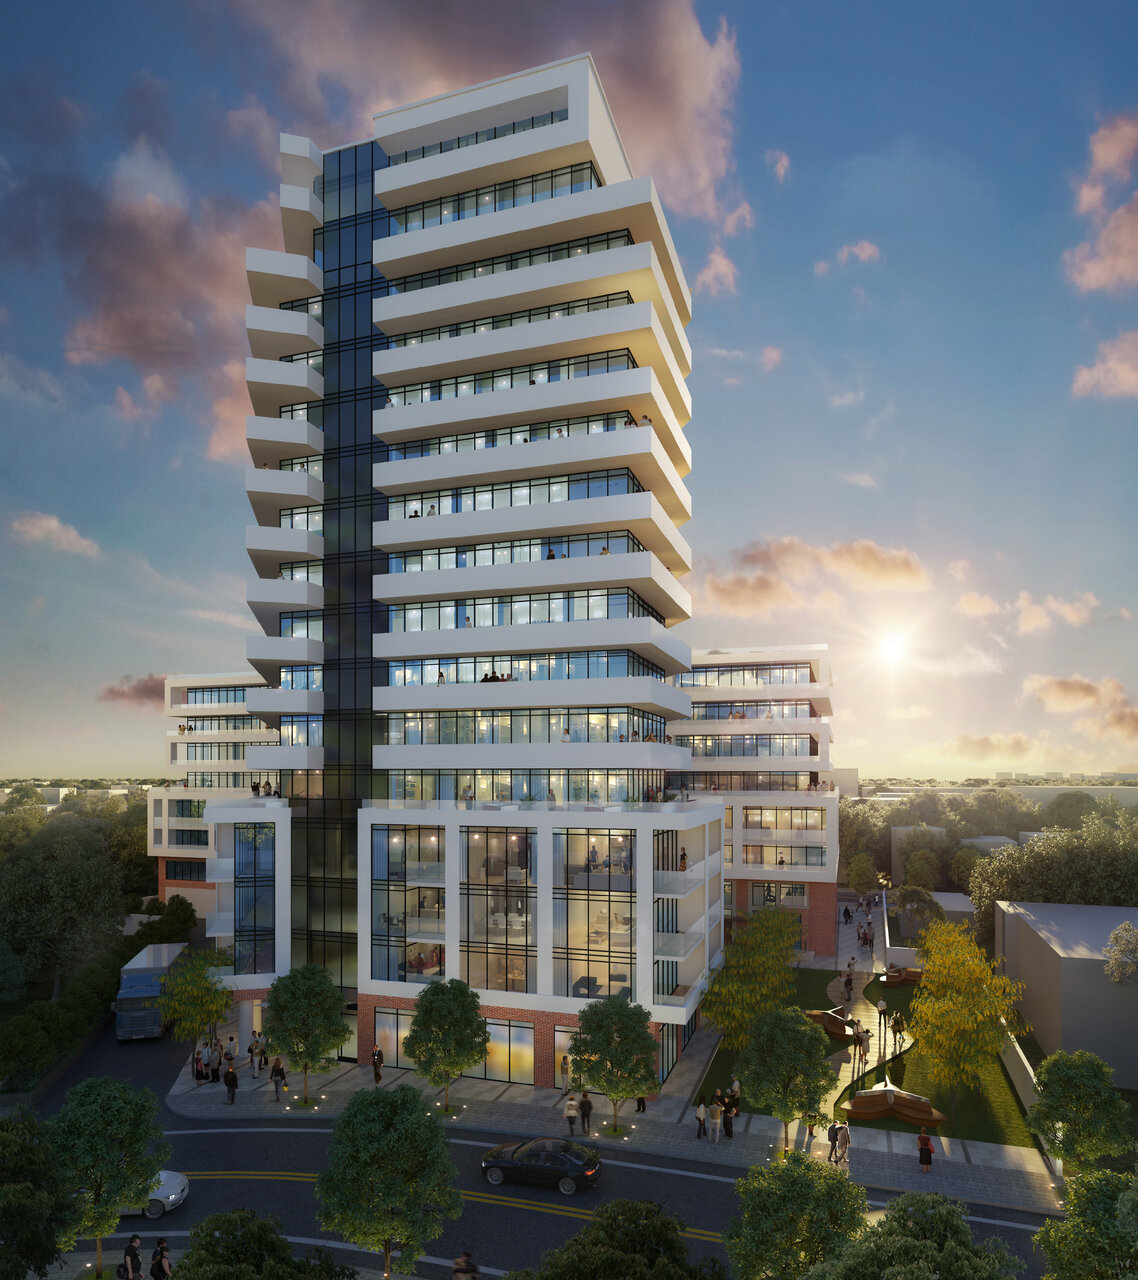 5-19 Cosburn Ave, IBI Group, City of Toronto